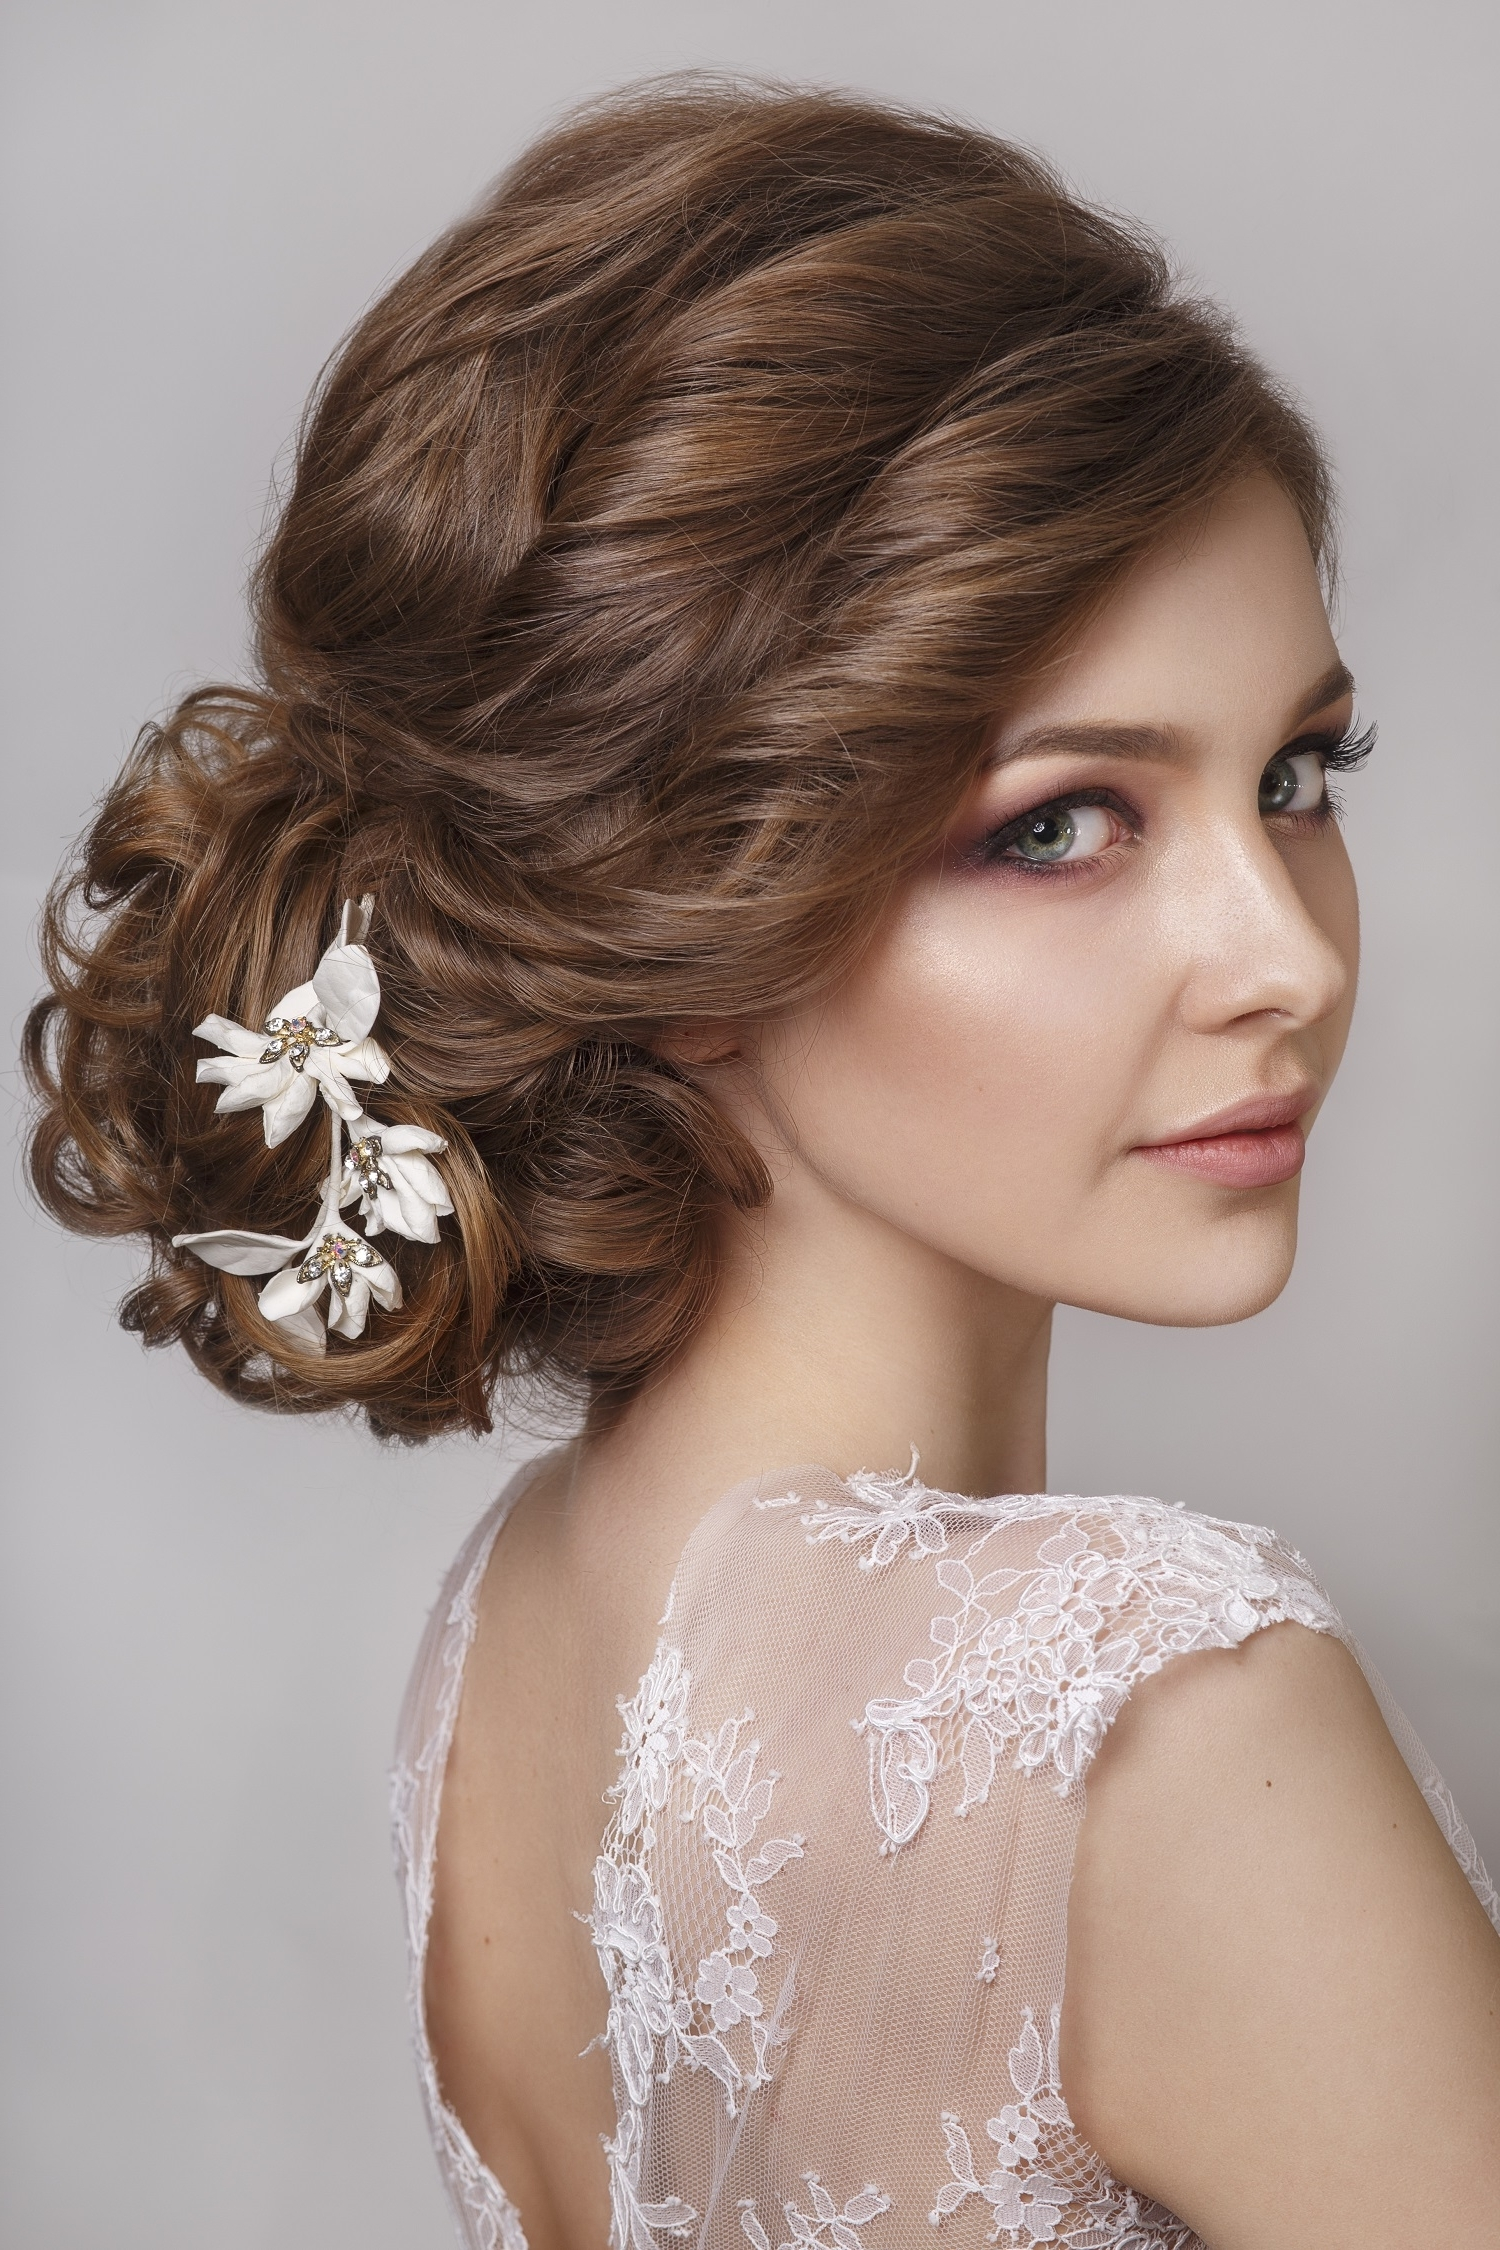 Latest Wedding Hairstyles To Match Your Dress With Regard To Choosing The Perfect Hairstyle To Match Your Wedding Dress – Al (View 9 of 15)